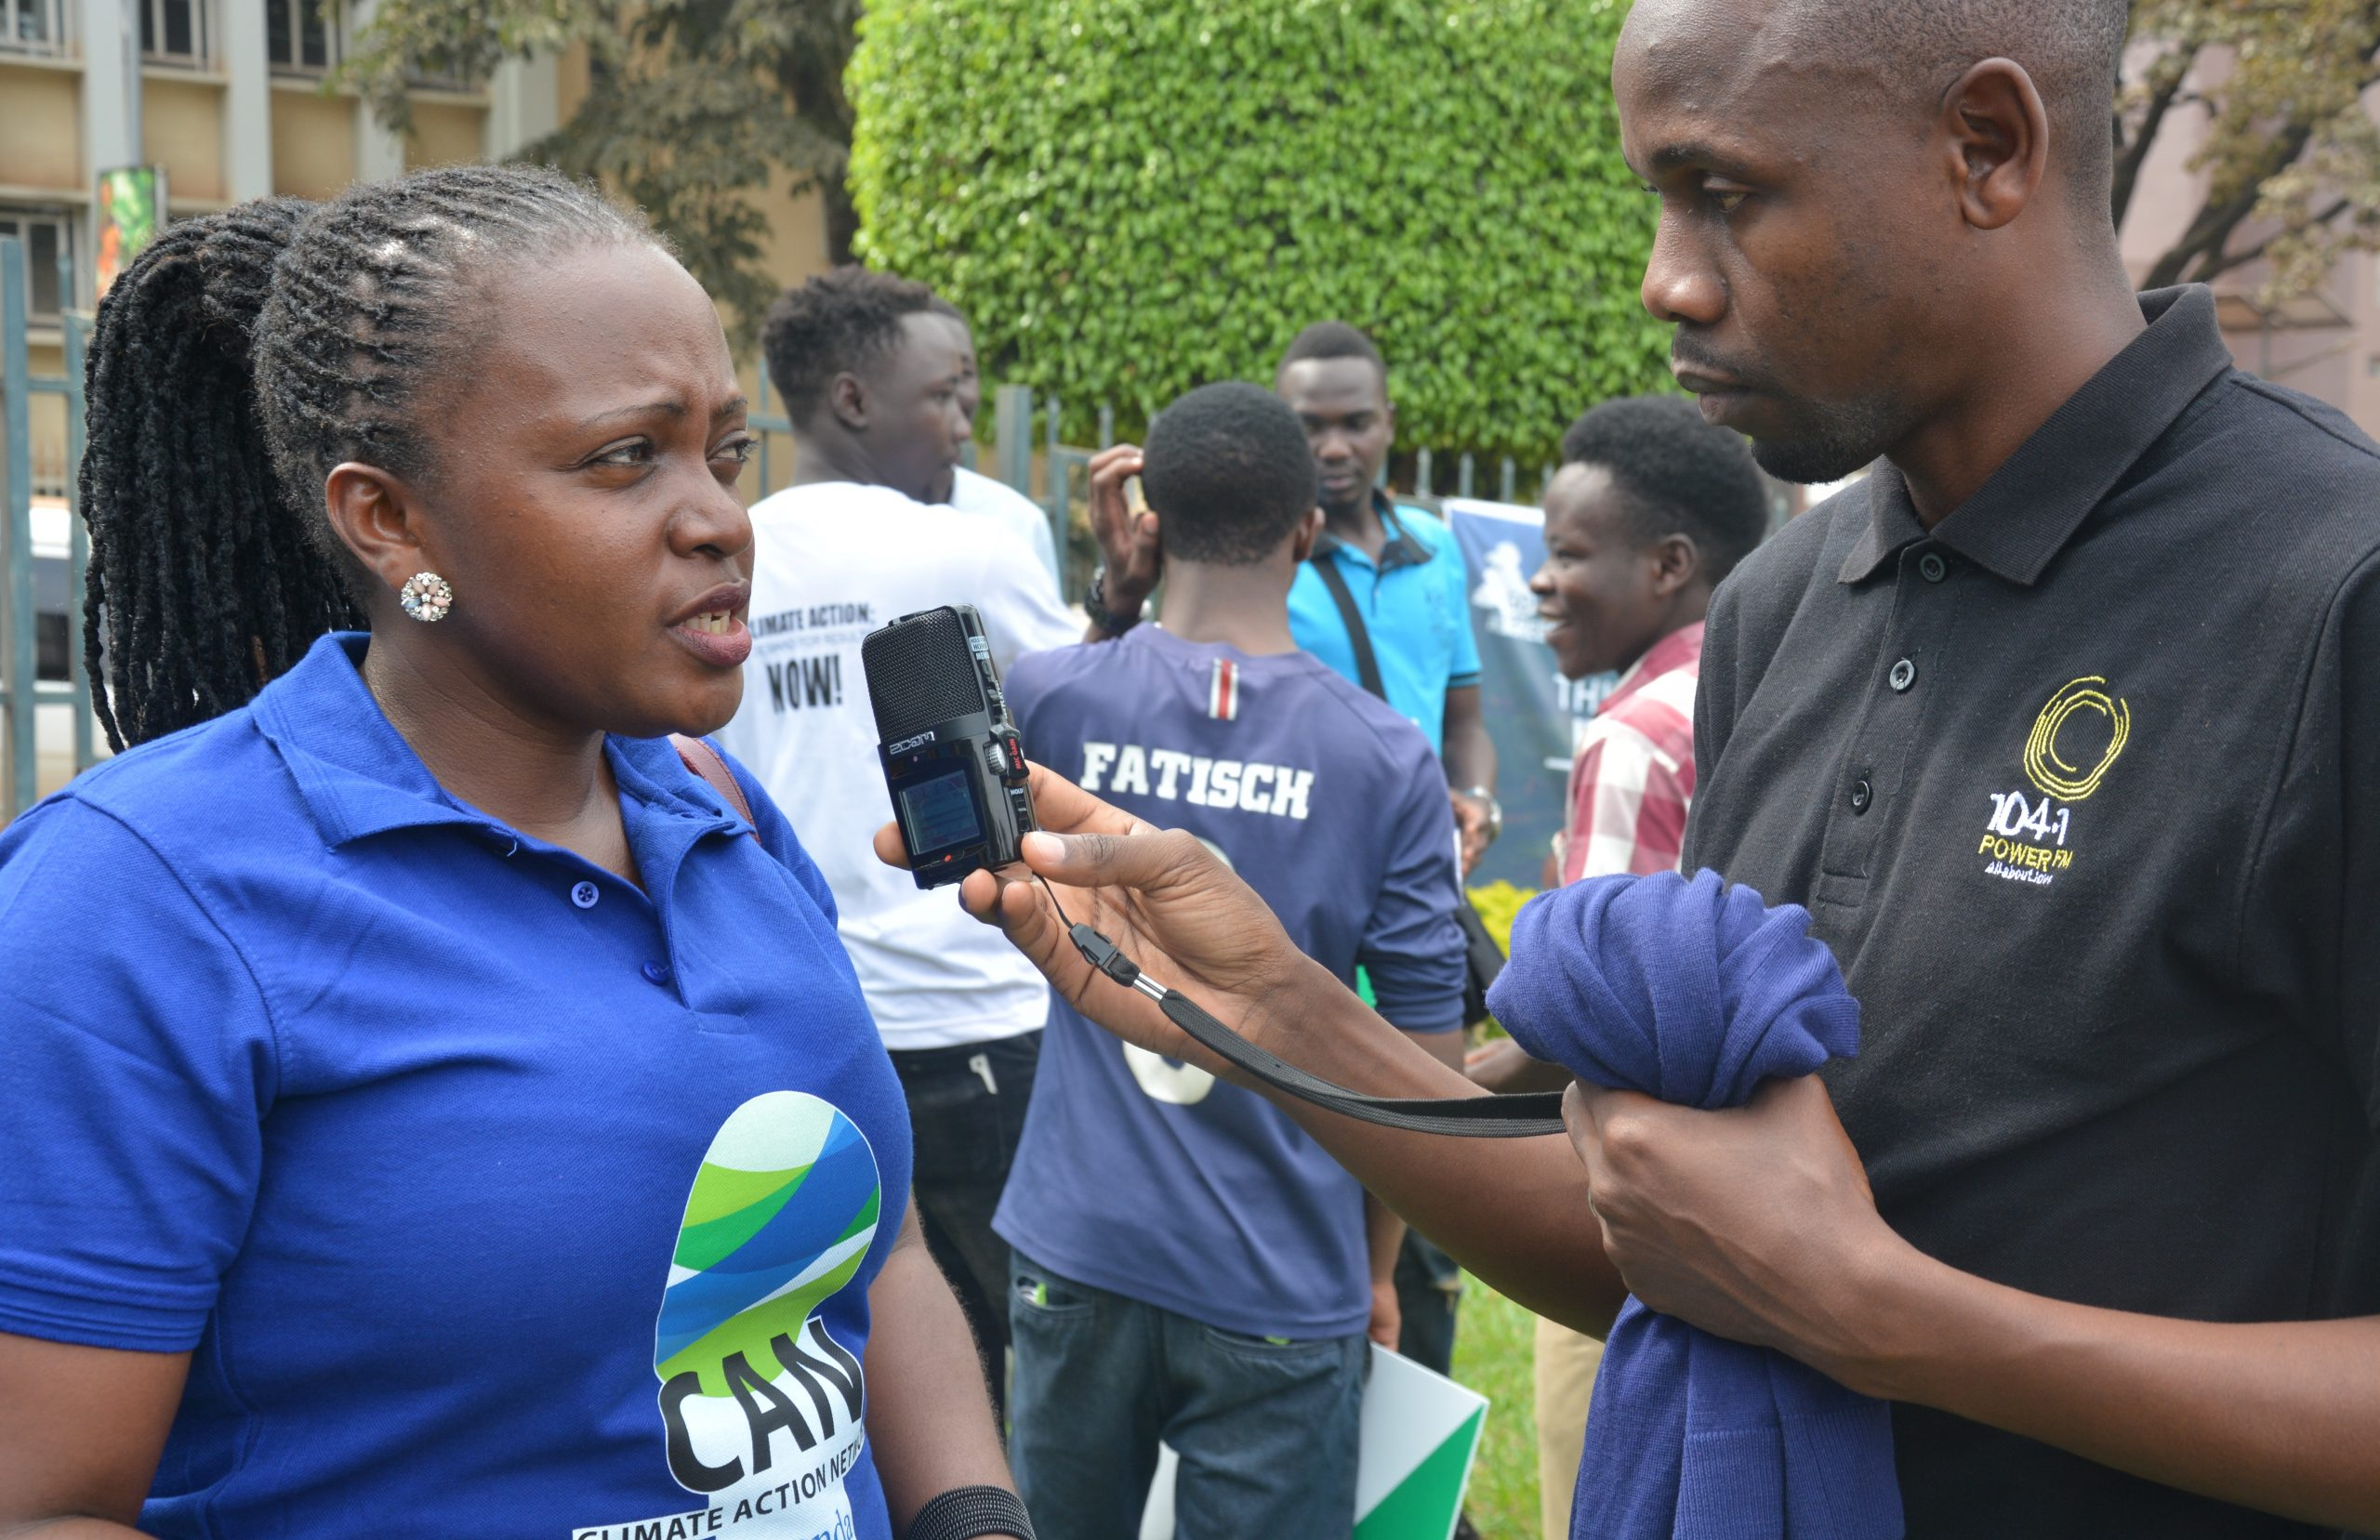 We engage the media to take our message out